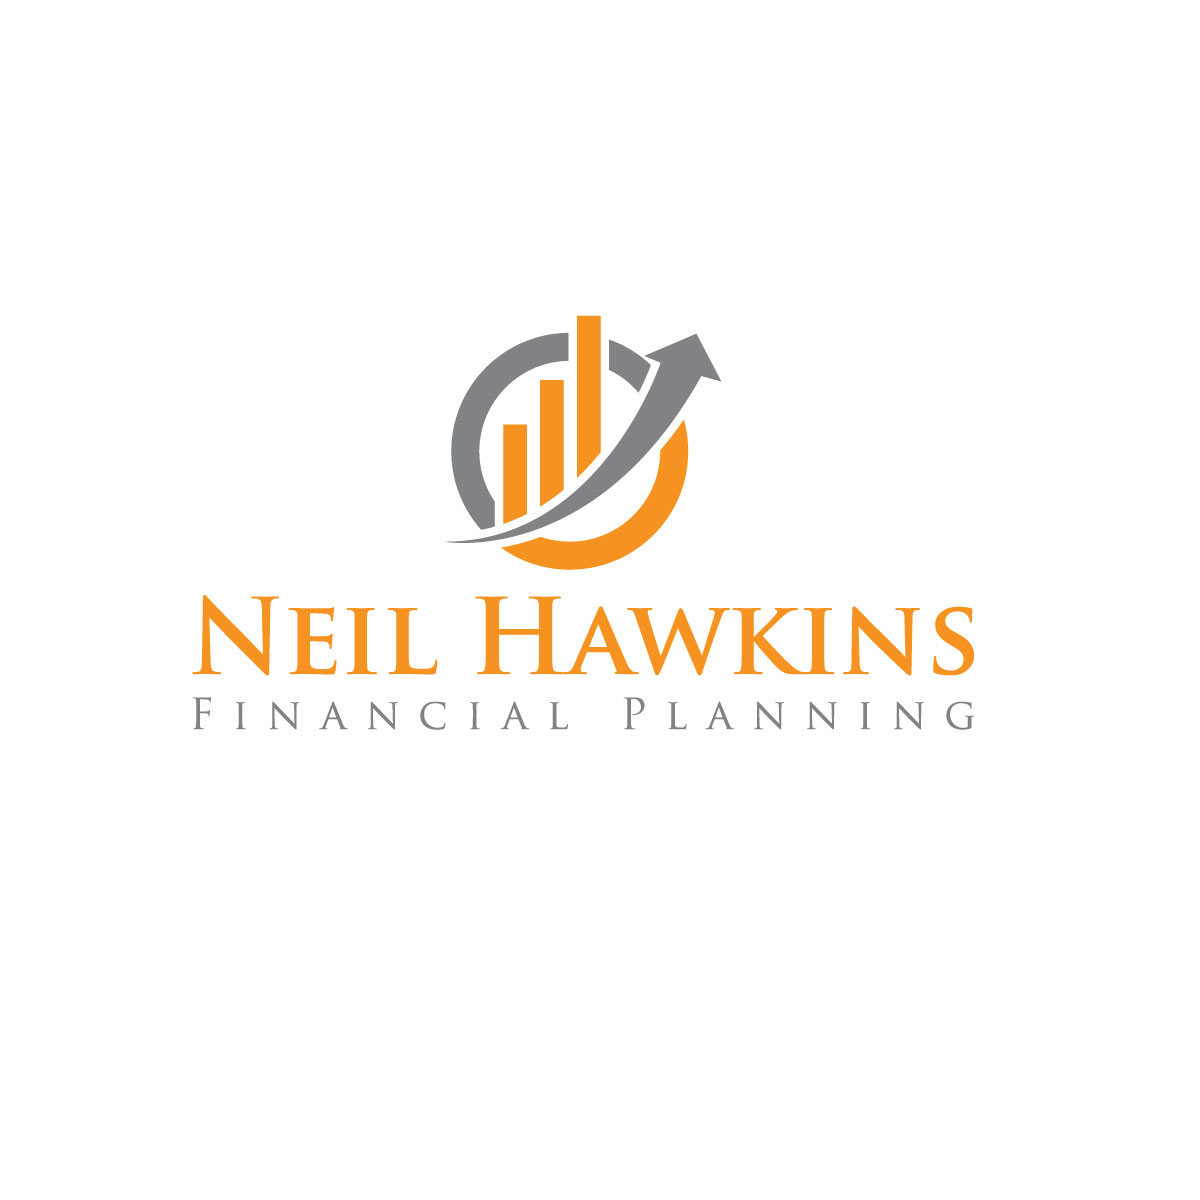 modern professional financial planning logo design for neil